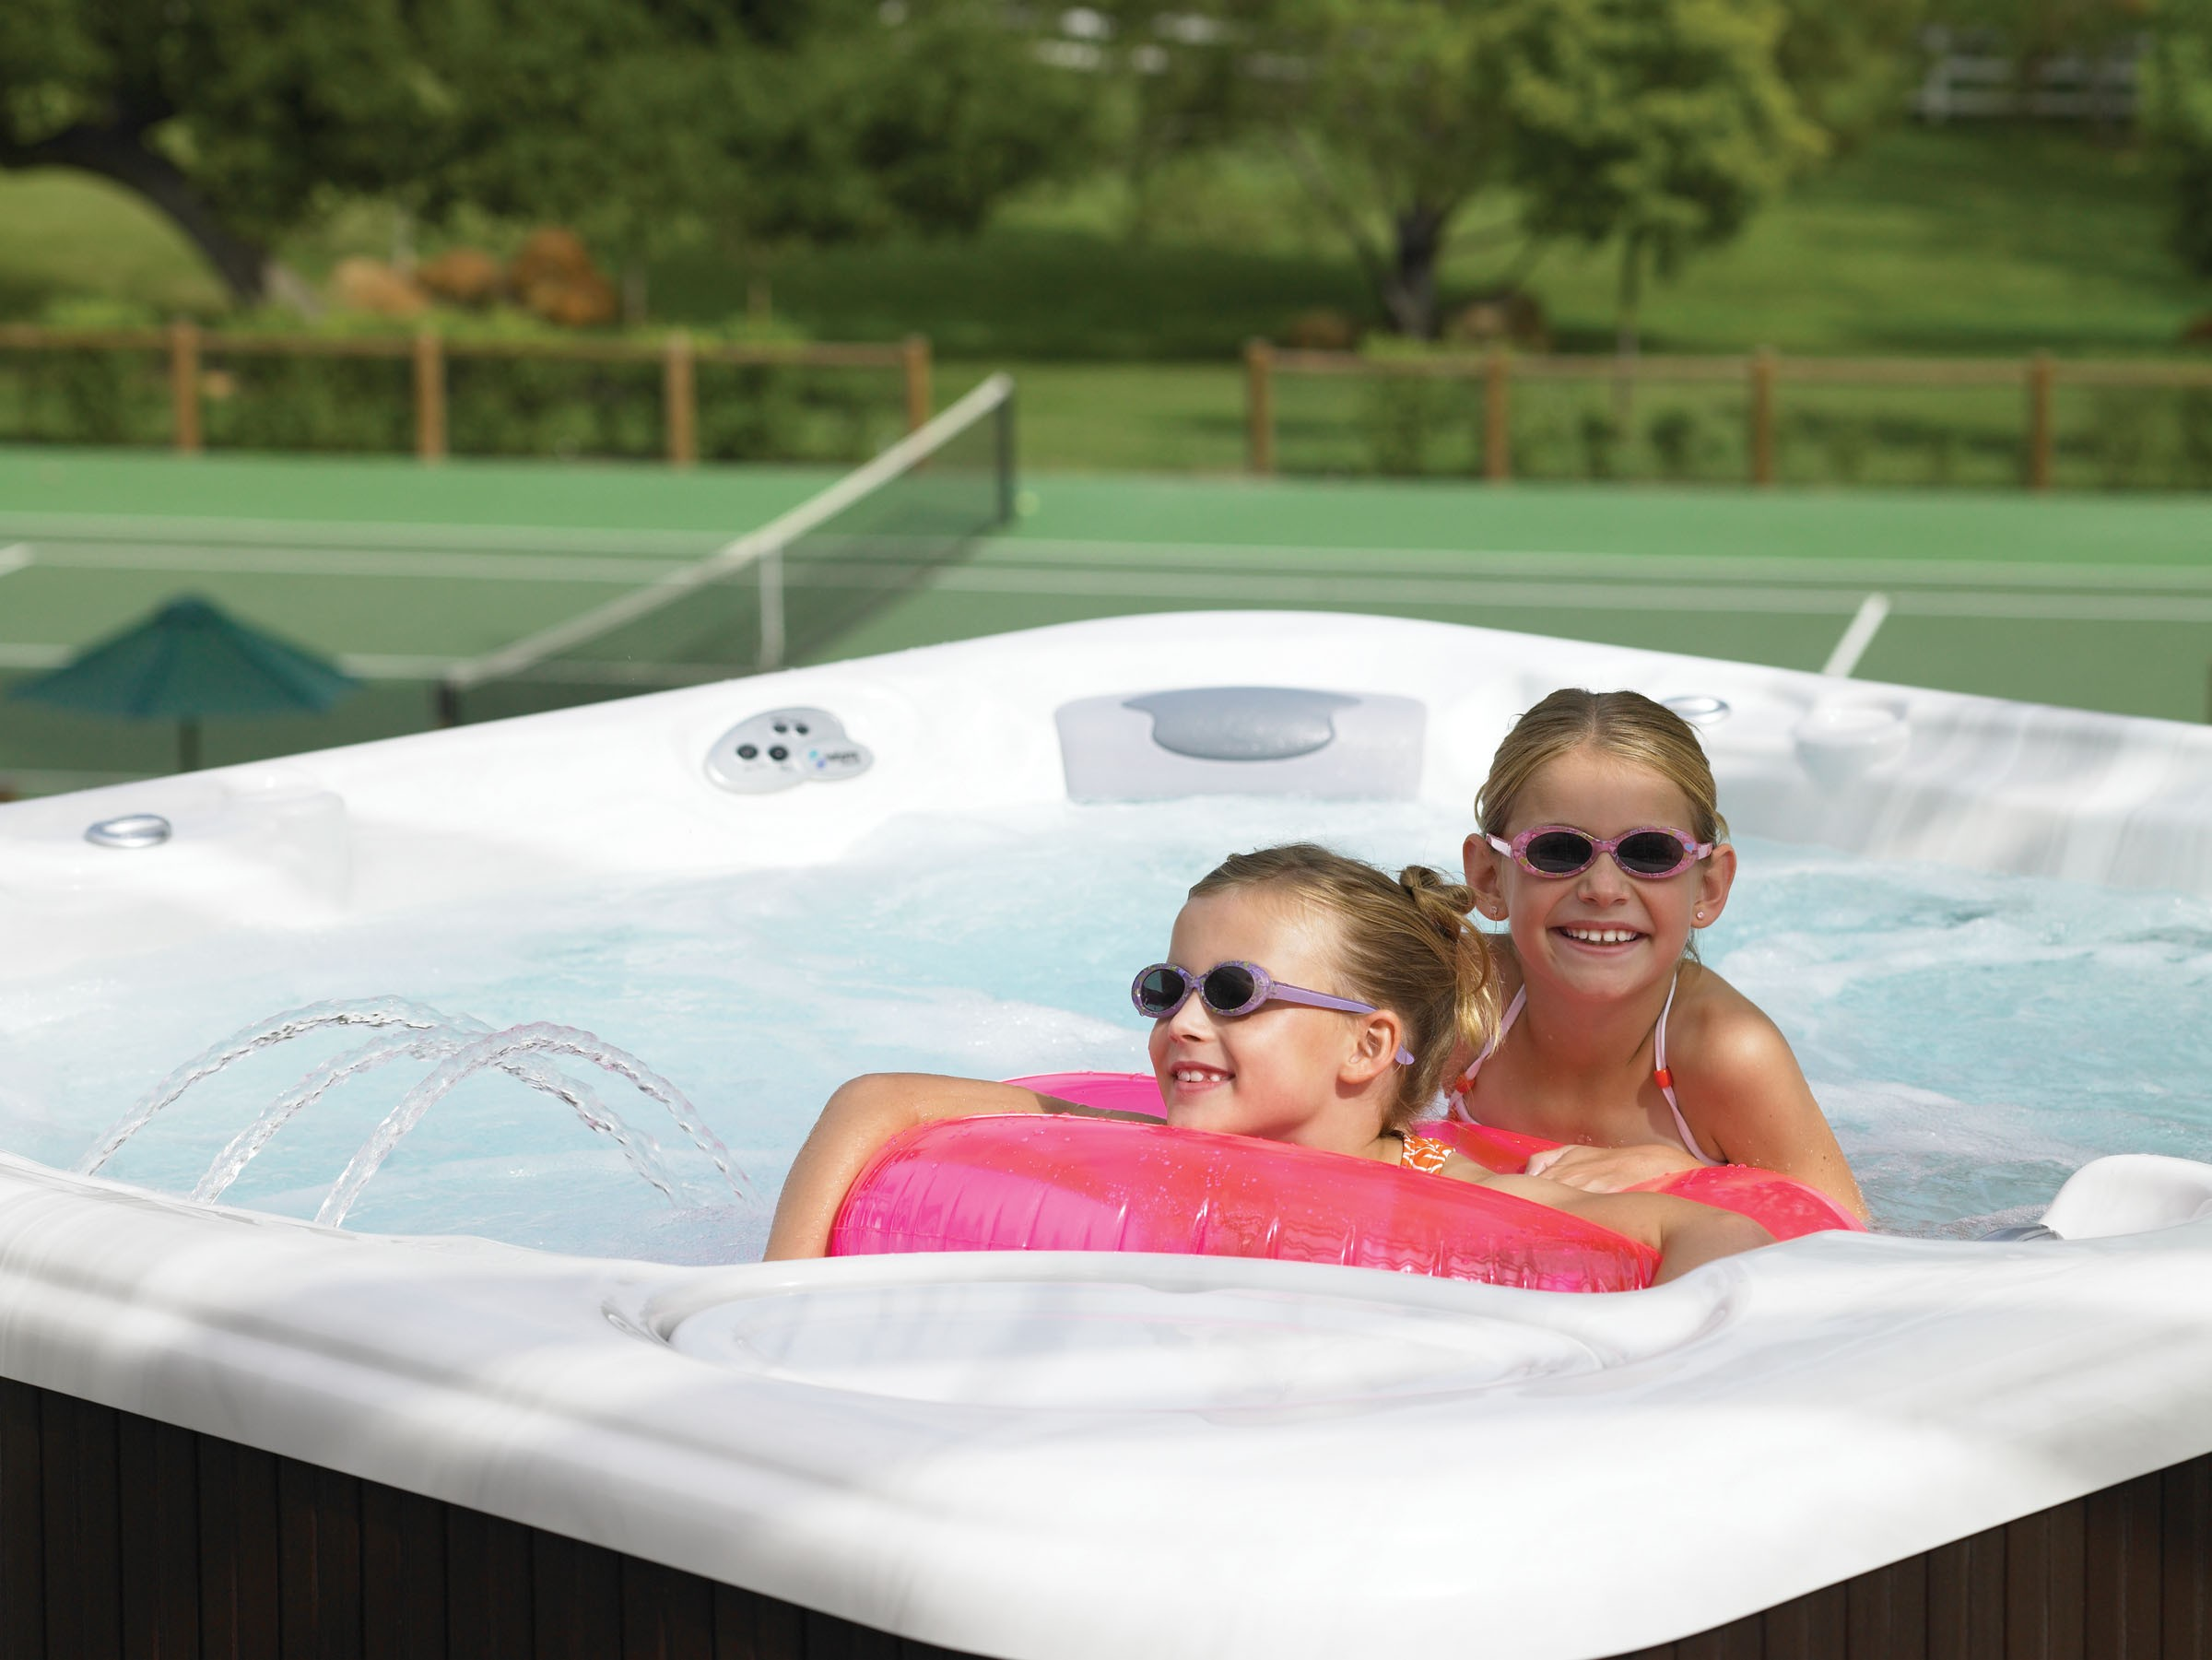 Top 5 Tips for Happy Hot Tub Soaking By Using the Right Water Care Products